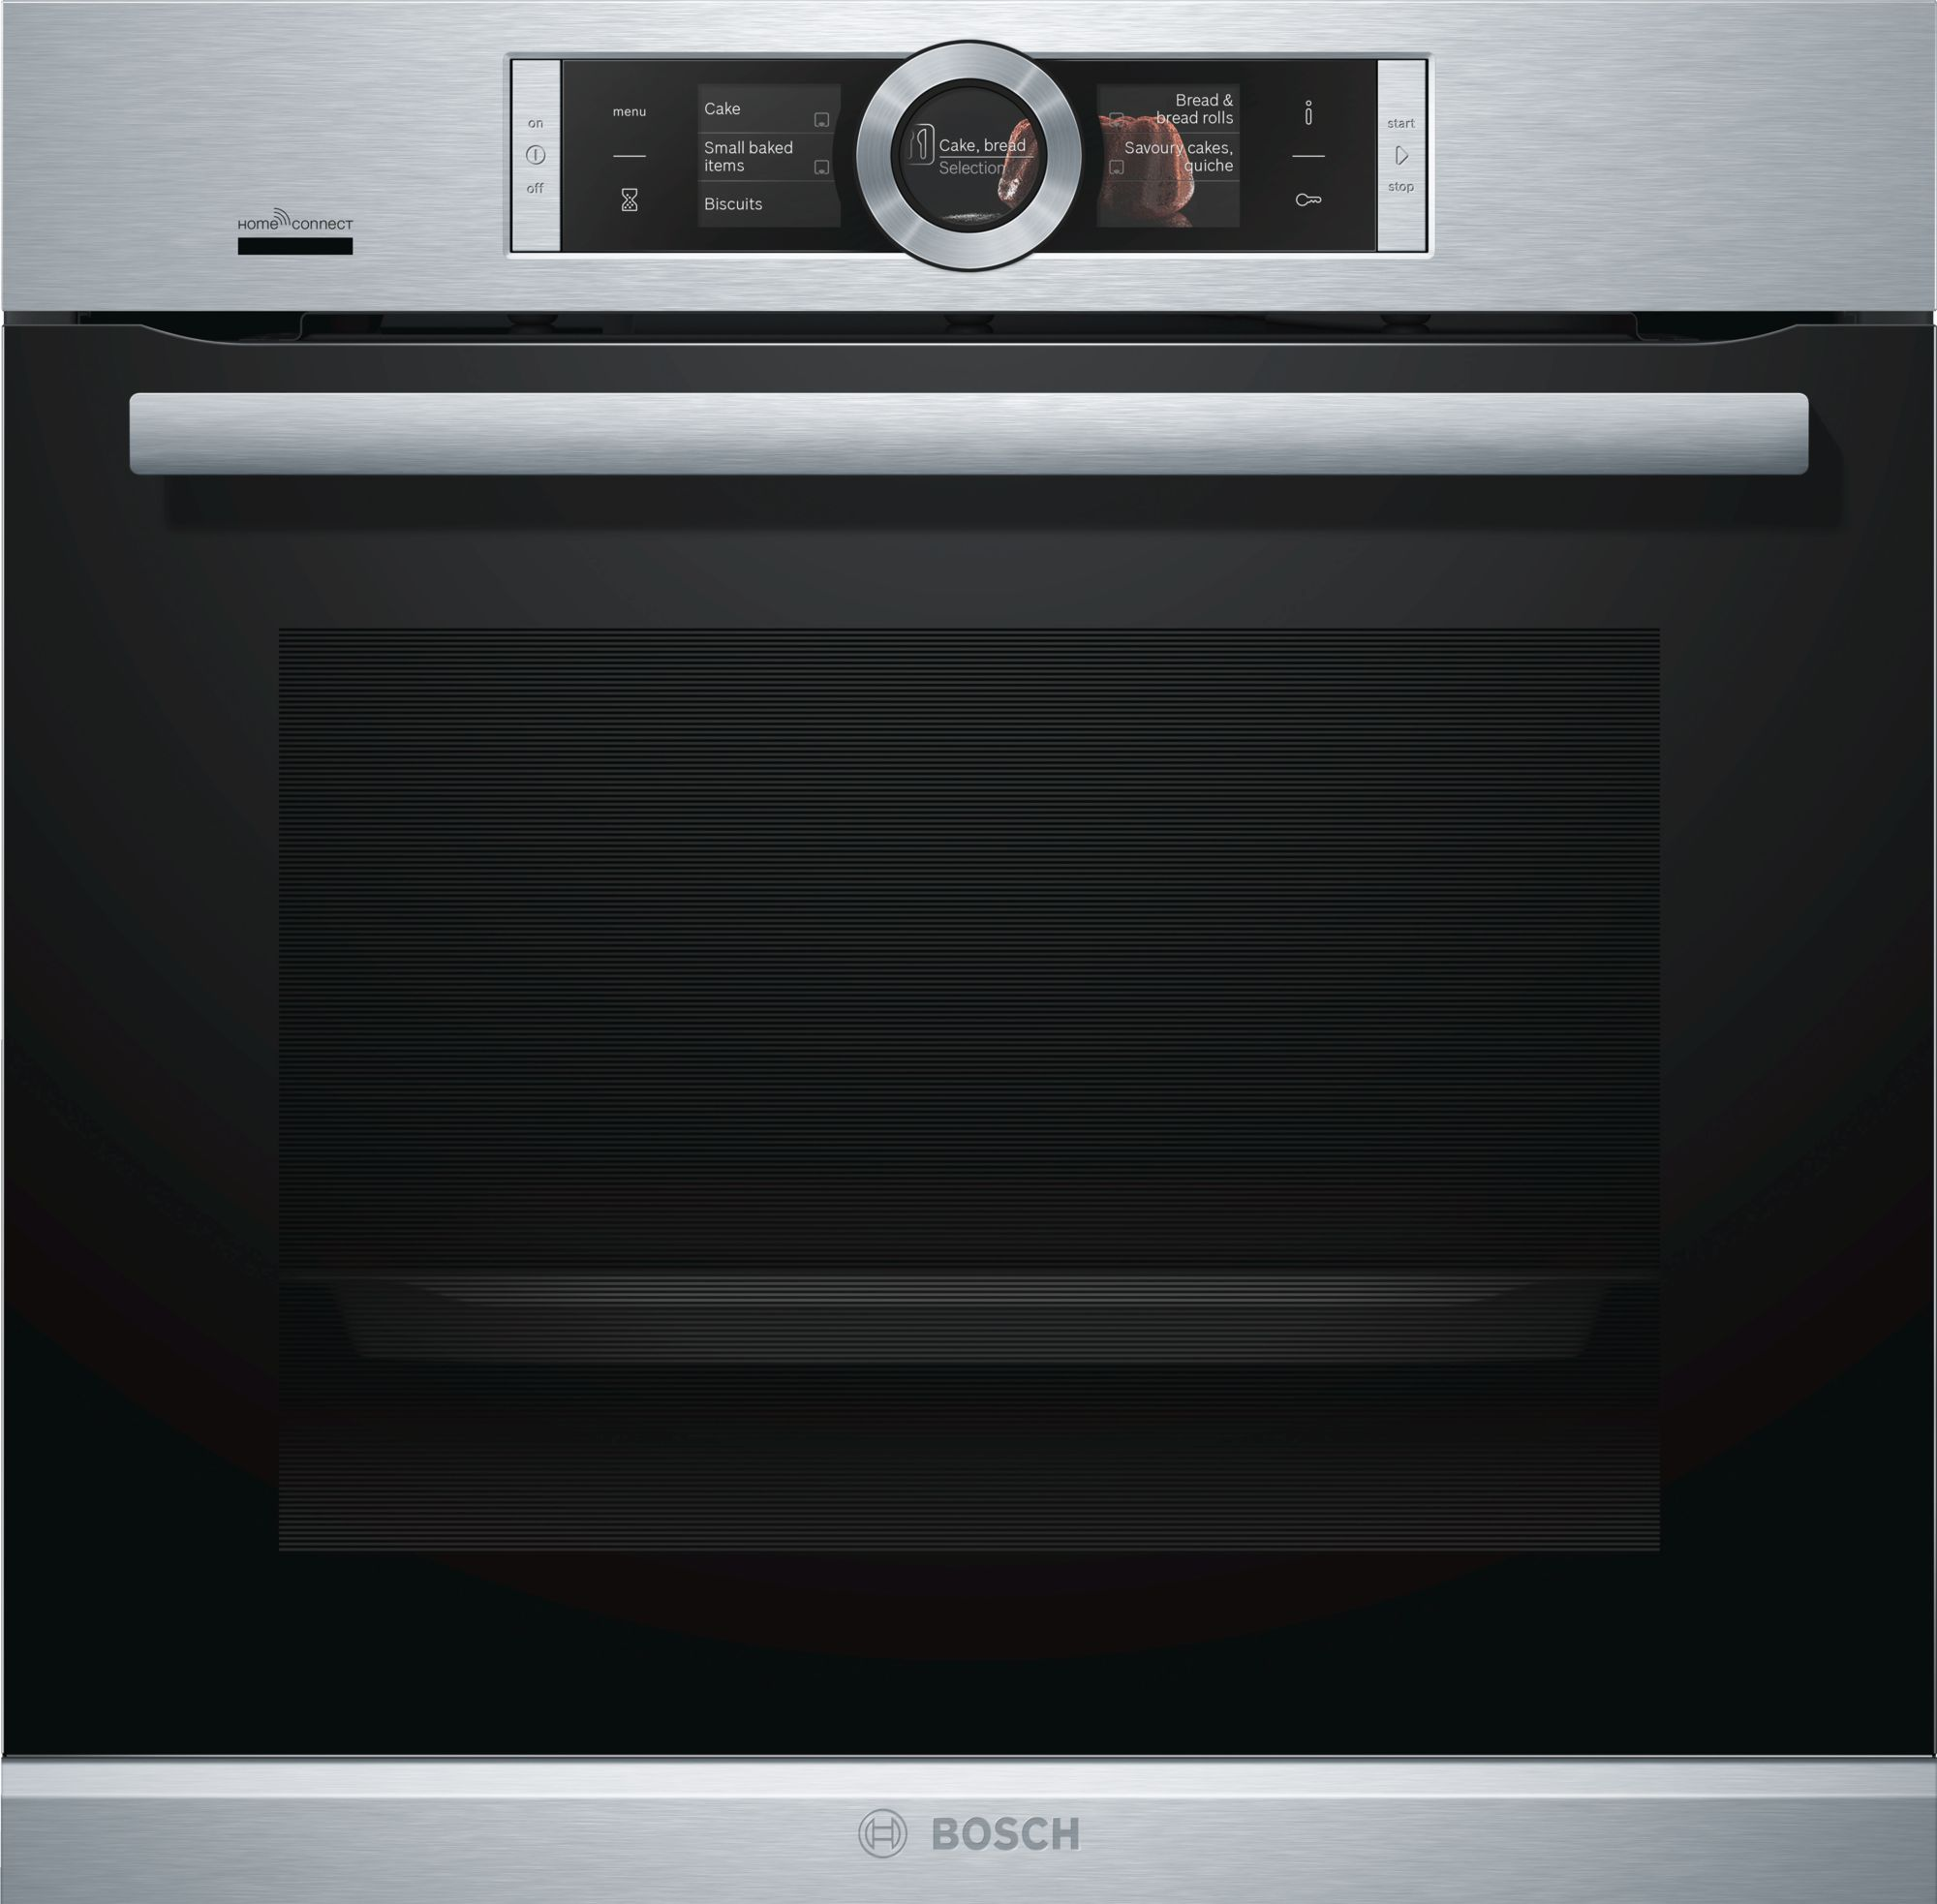 Bosch 500 Series 24 Built In Electric Single Wall Oven Stainless Steel Hbe5452uc